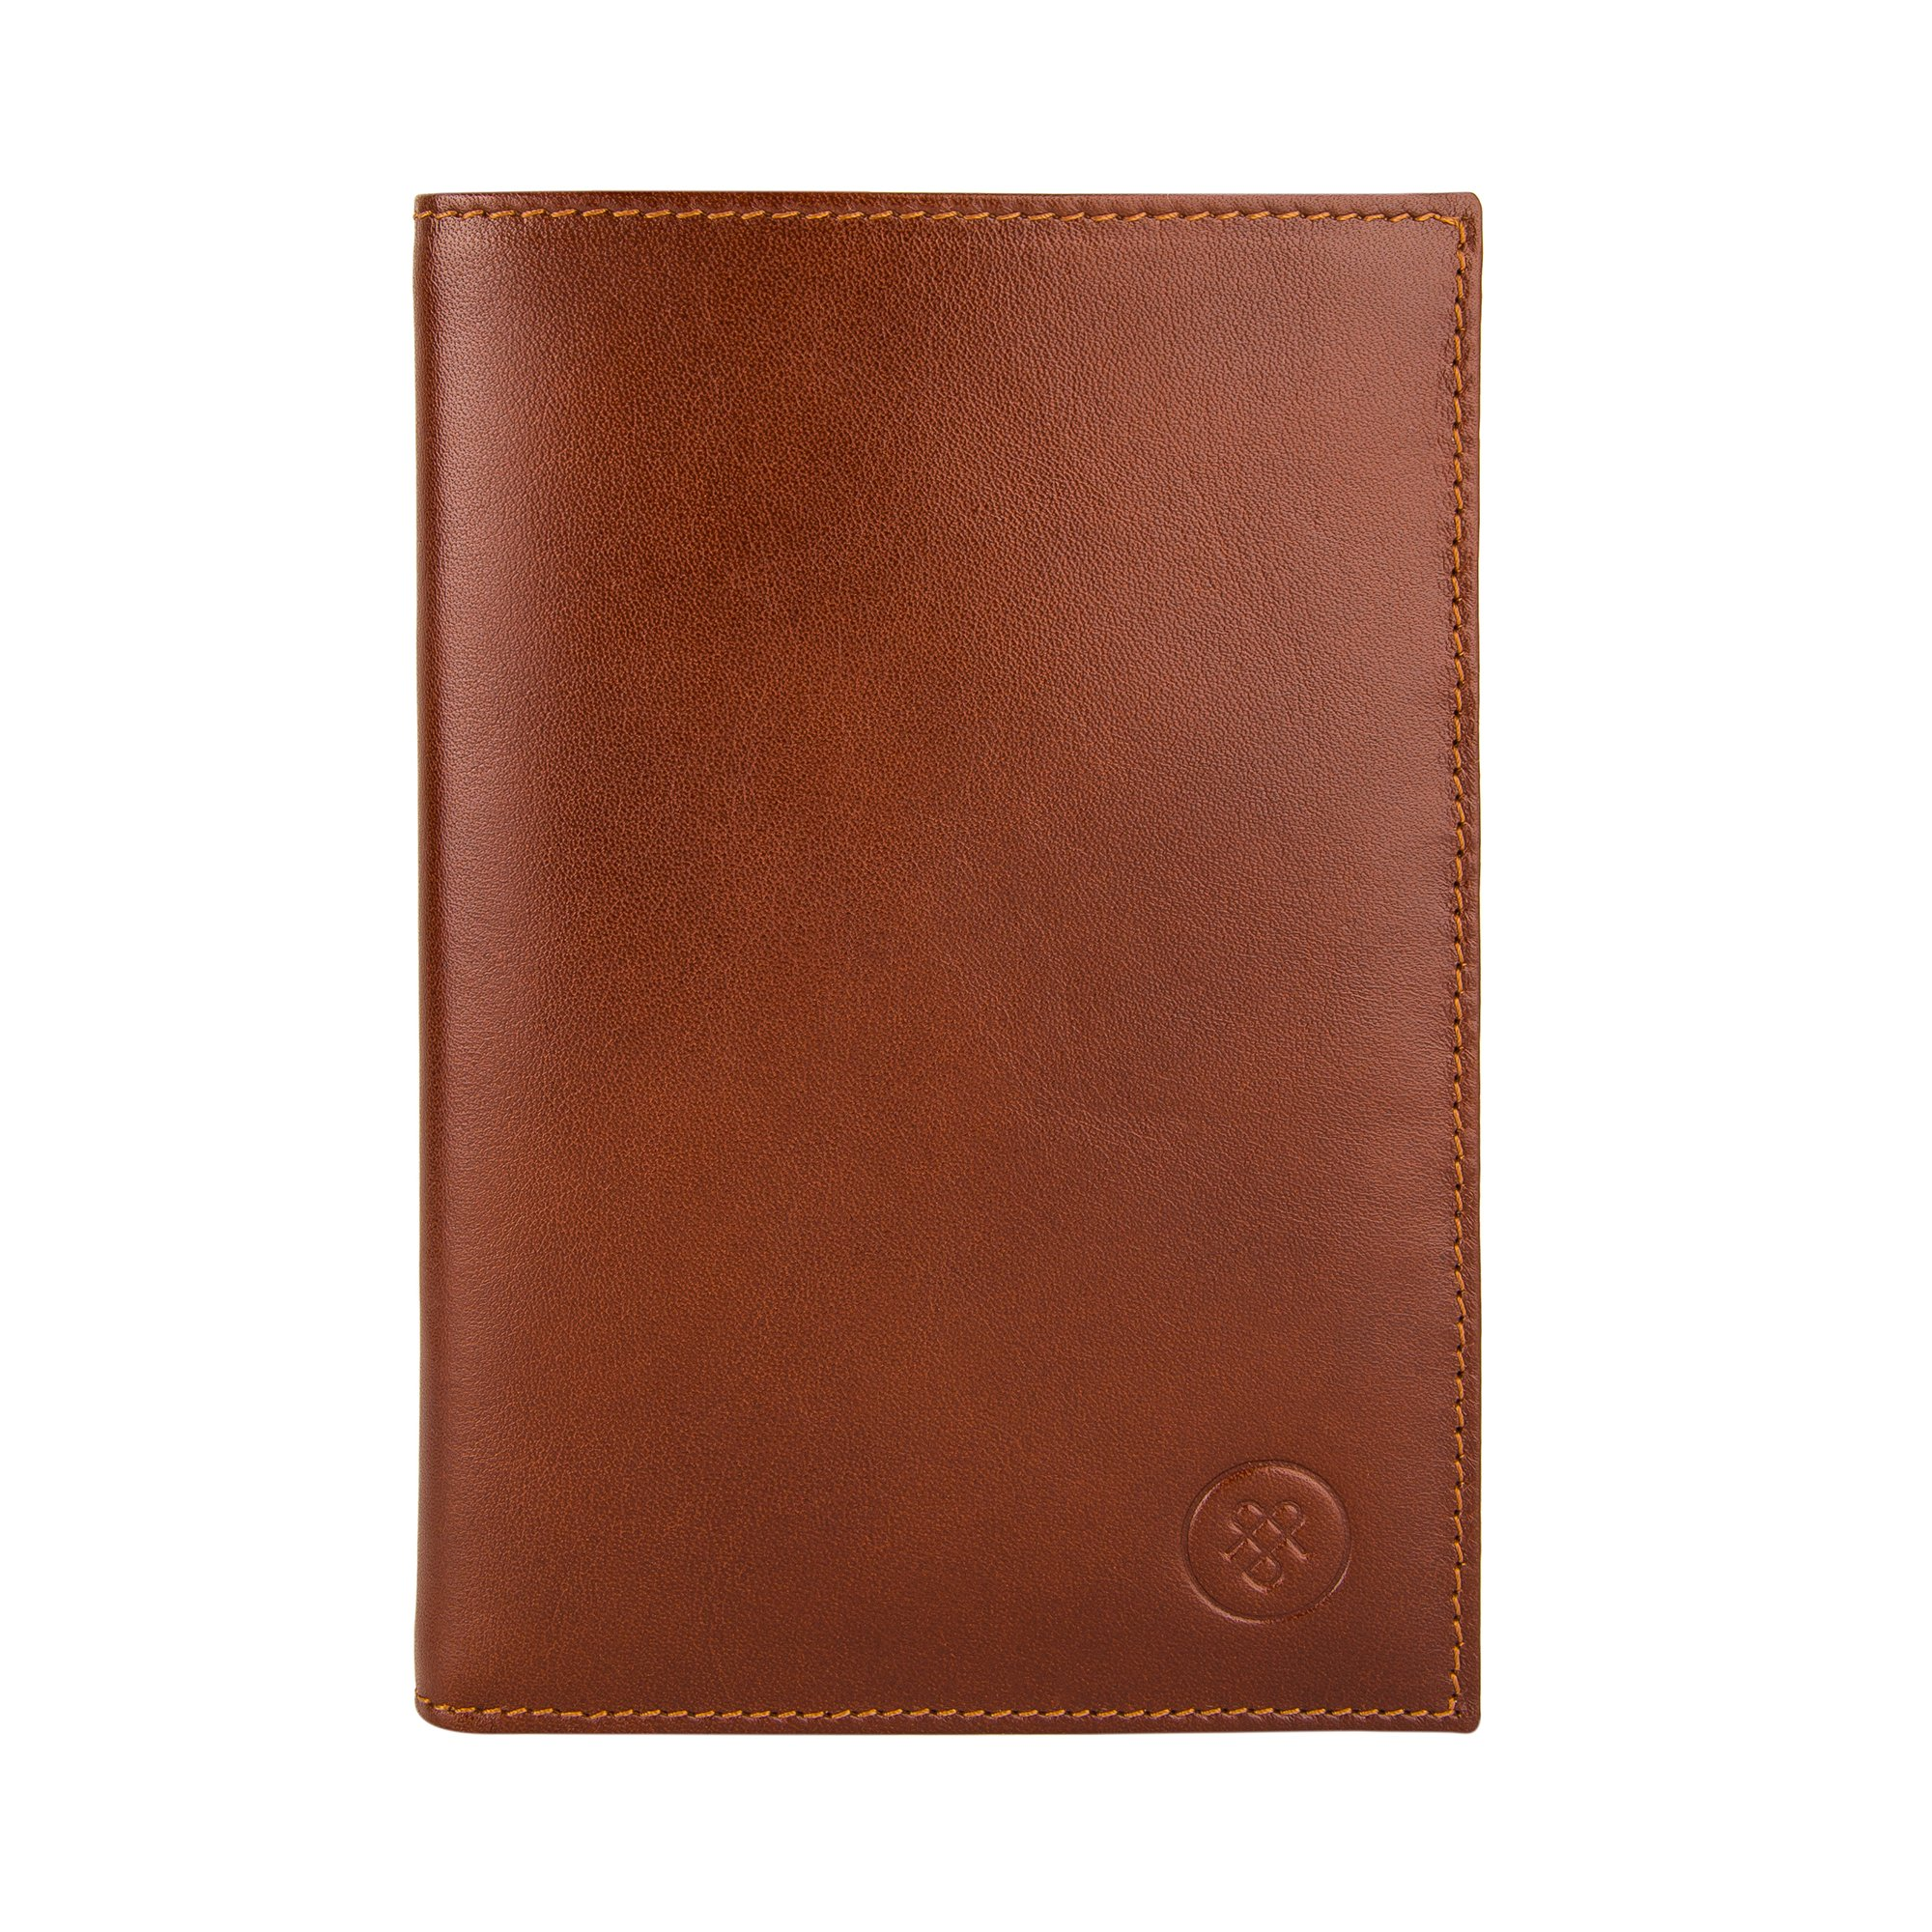 Maxwell Scott Luxury Tan Leather Jacket Wallet - One Size (The Pianillo) by Maxwell Scott Bags (Image #3)